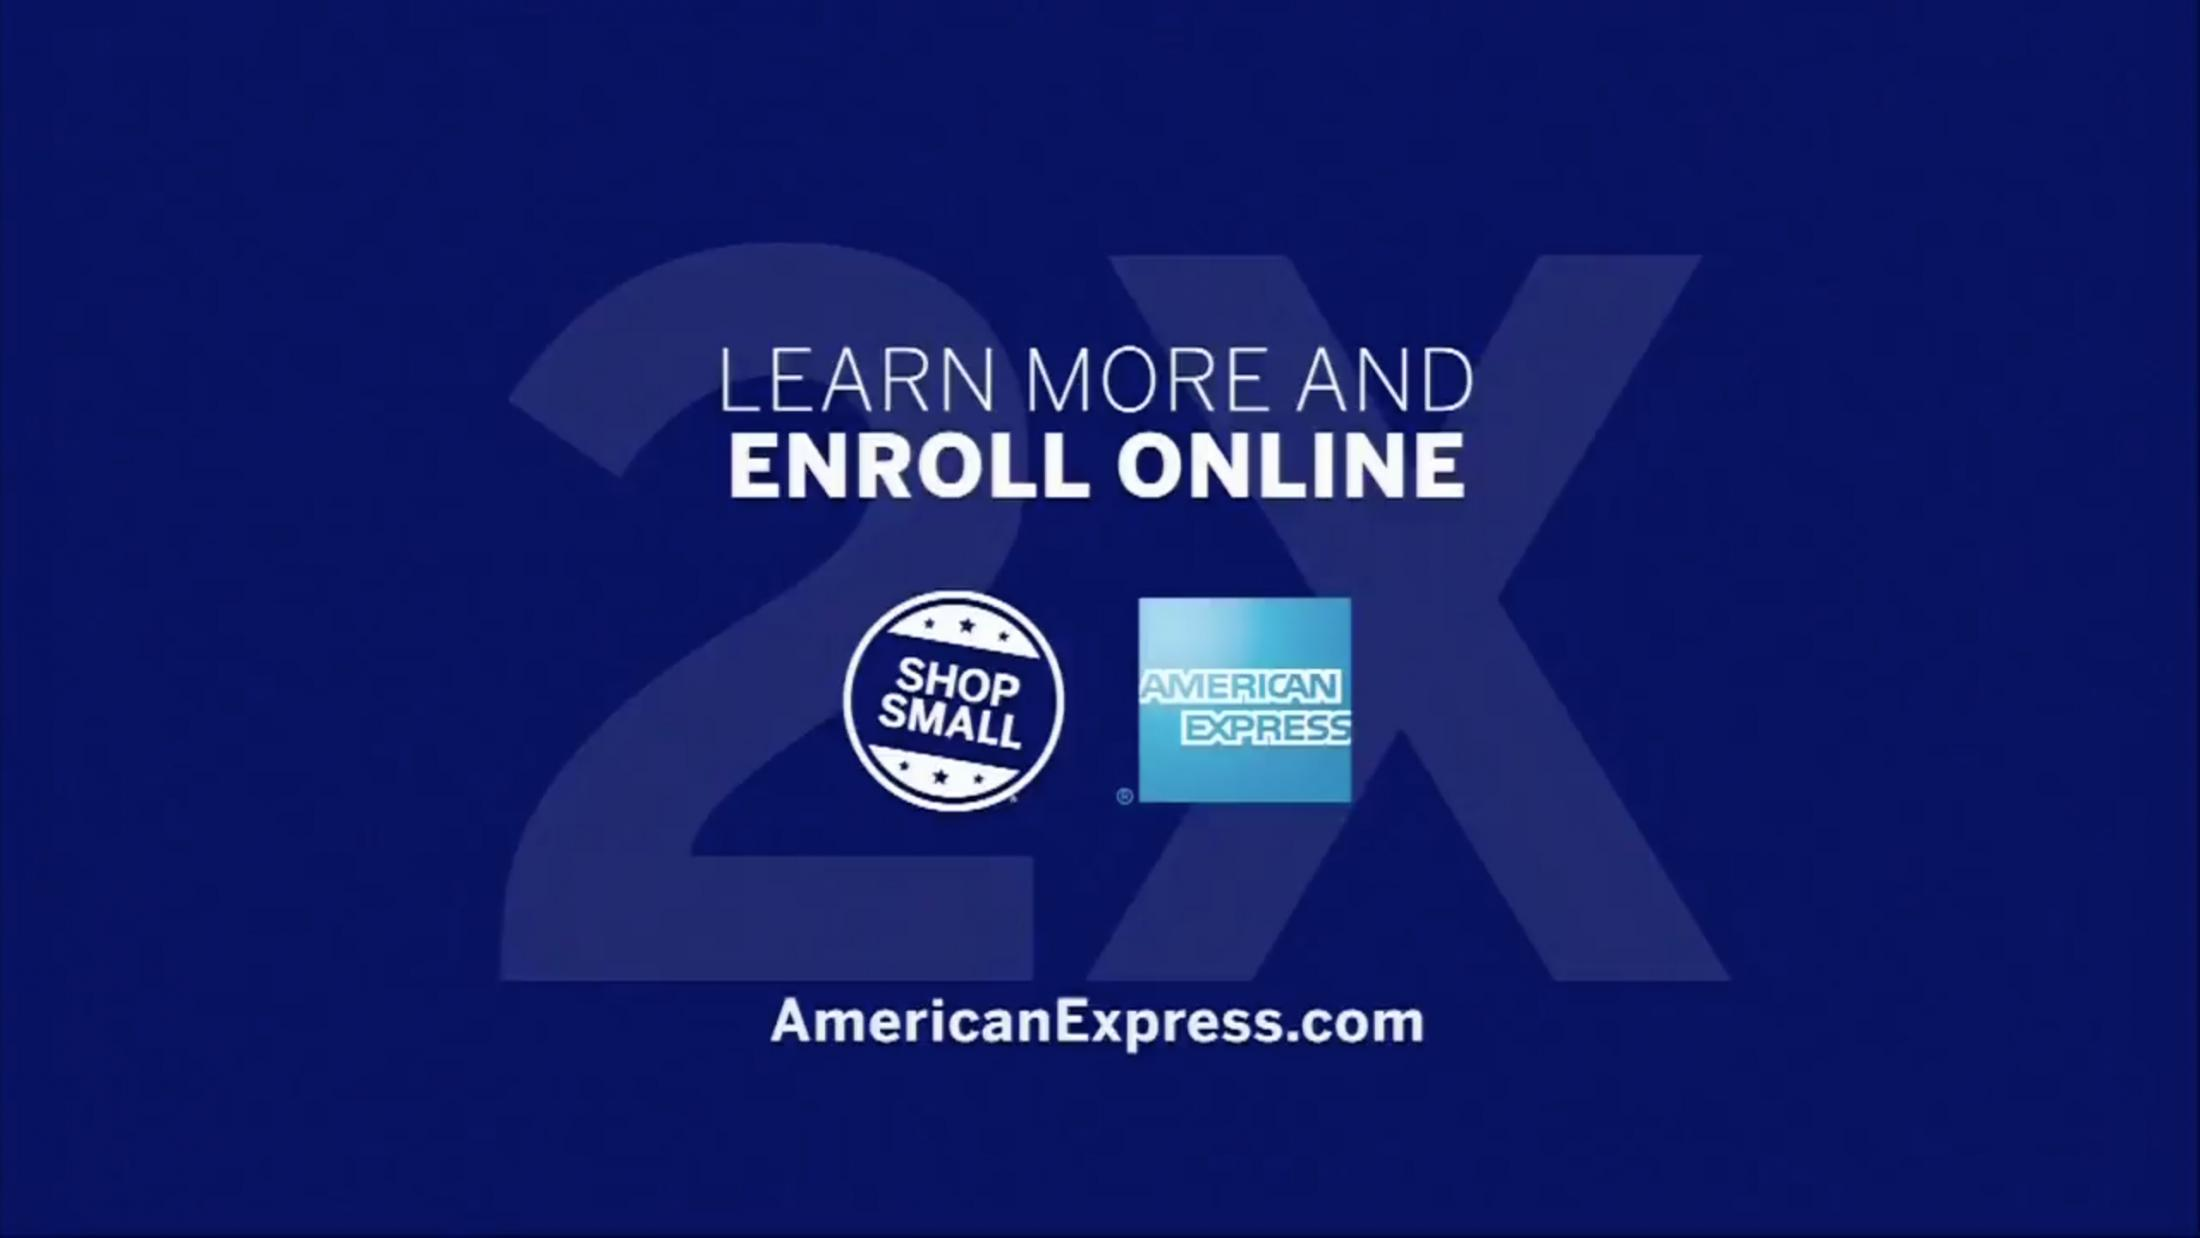 Image Media for American Express Shop Small for 2X Rewards